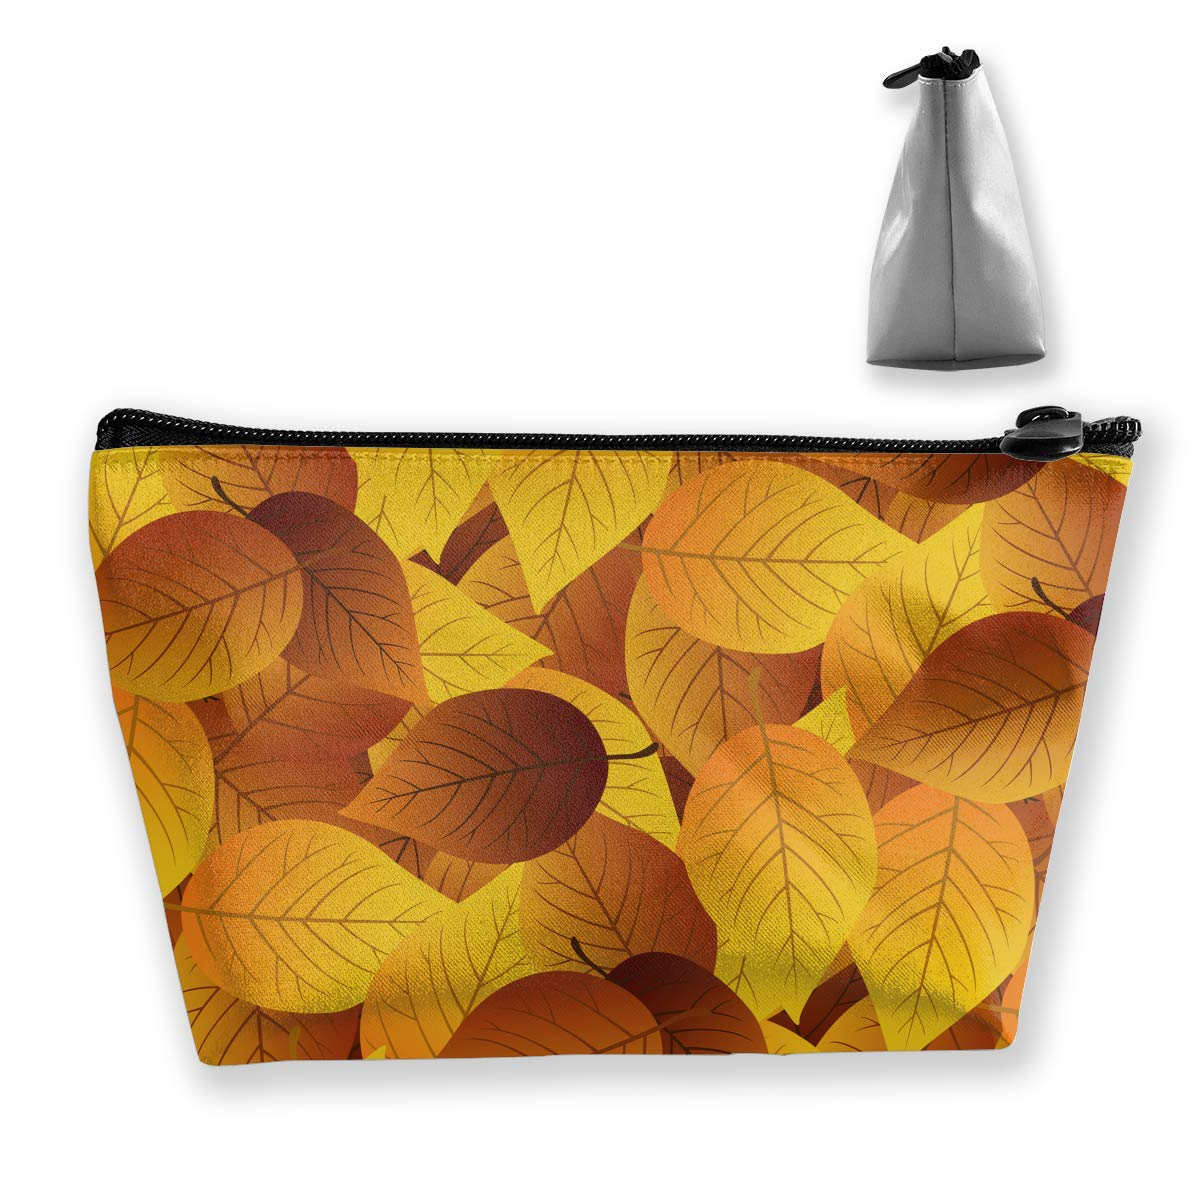 Trapezoid Toiletry Pouch Portable Travel Bag Golden Leaves Zipper Wallet